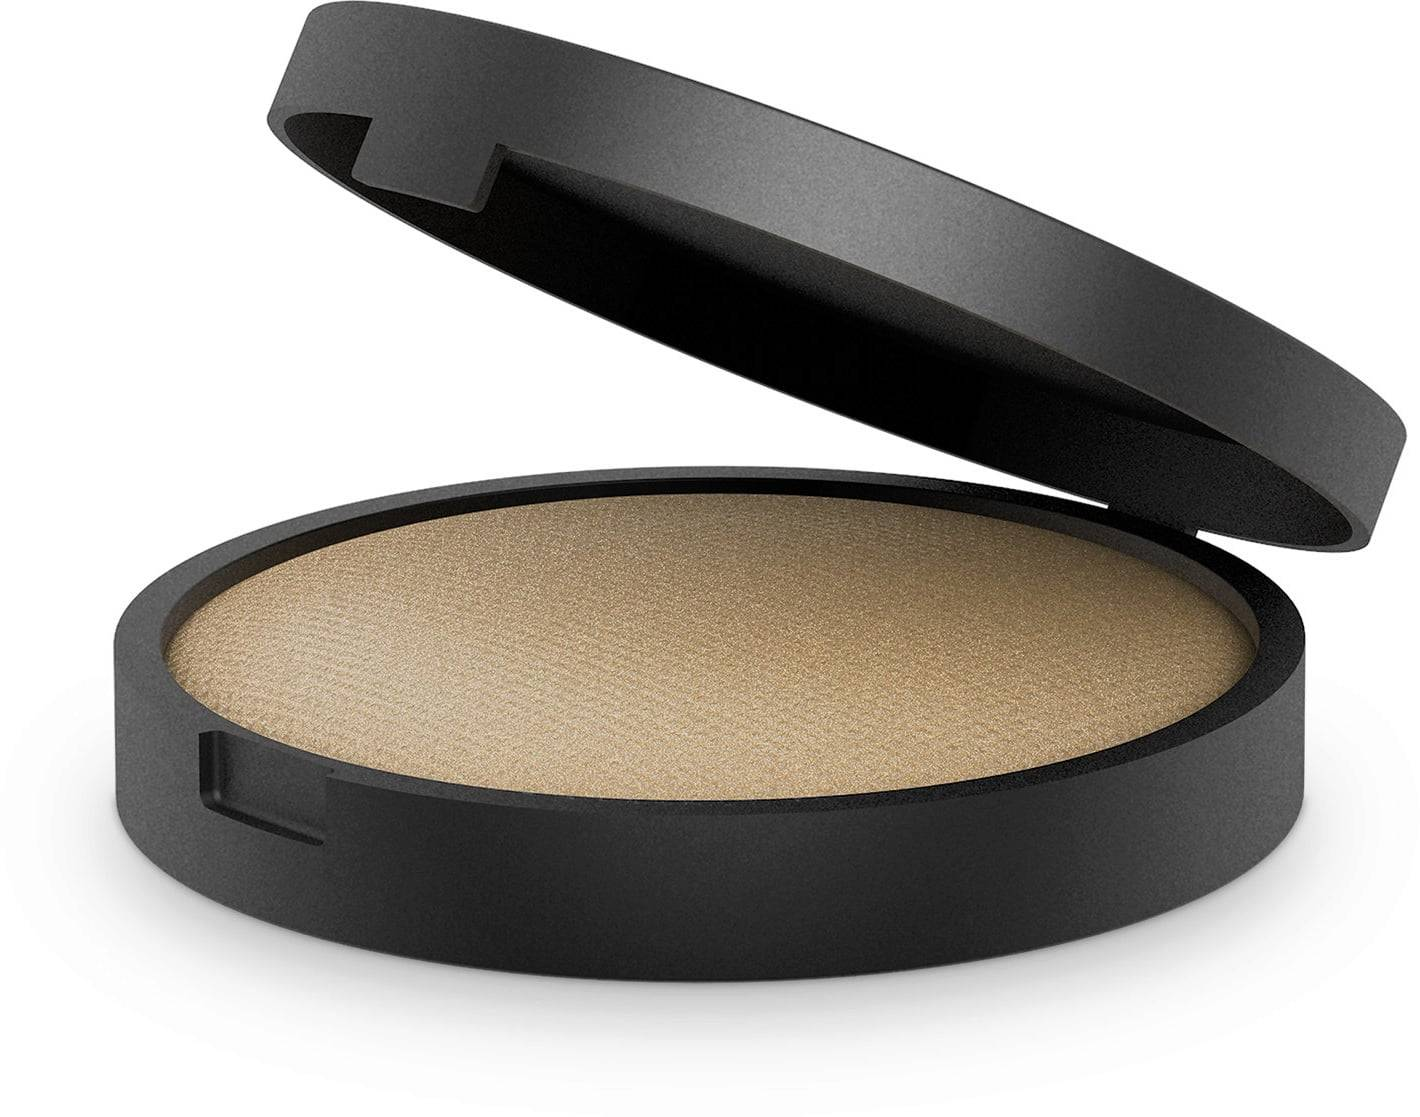 Inika Baked Mineral Foundation - Trust